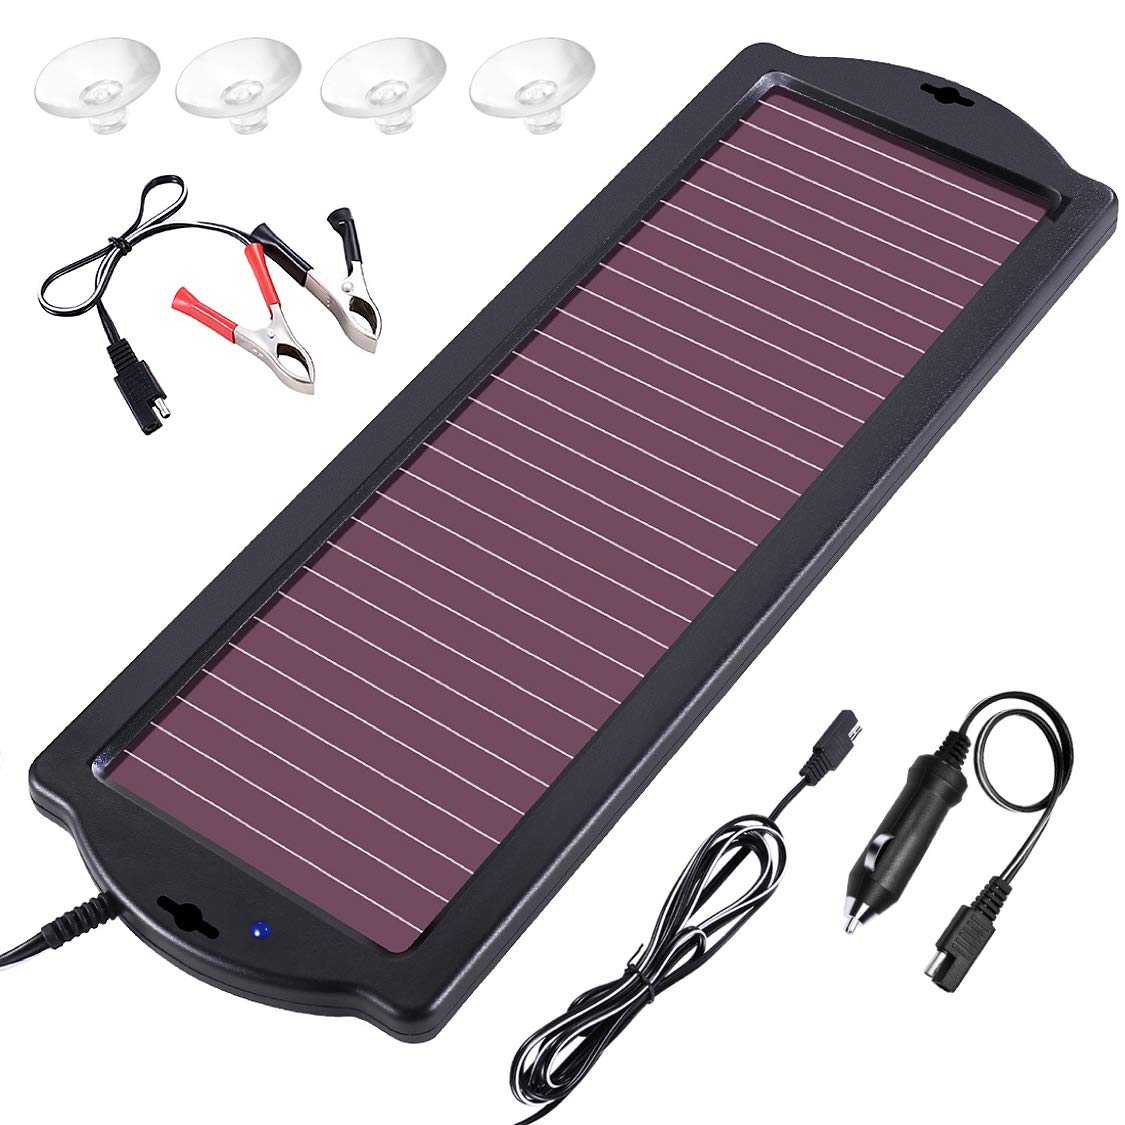 zeal life Solar car Charger 12V 1.8W Solar Battery trickle Charger Waterproof Portable Solar Panel Amorphous for Rv Motorcycle Boat Marine Vehicle Snowmobile Watercraft. by zeal life